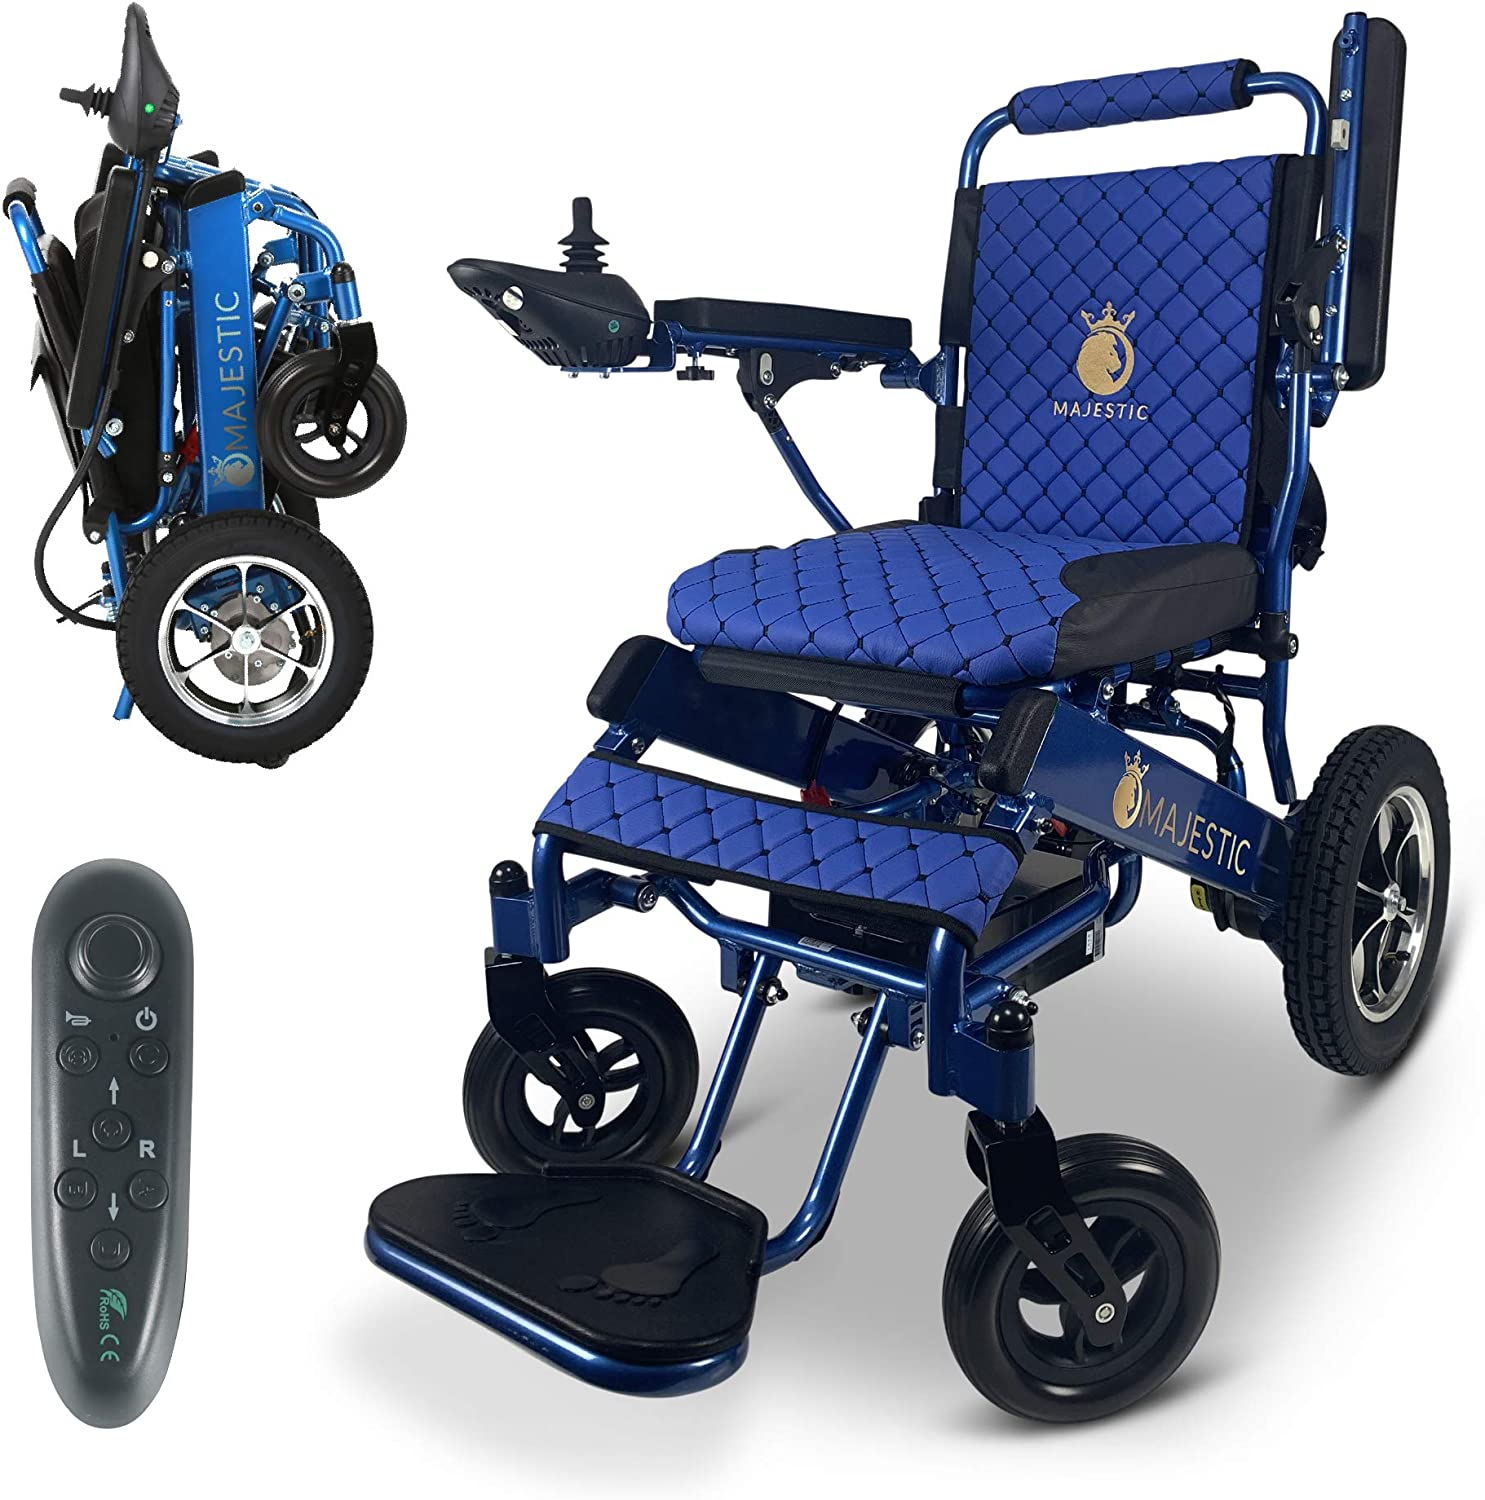 2020 Limited Edition Max 41% OFF Remote Regular store Foldable Wheelchair Electric Control